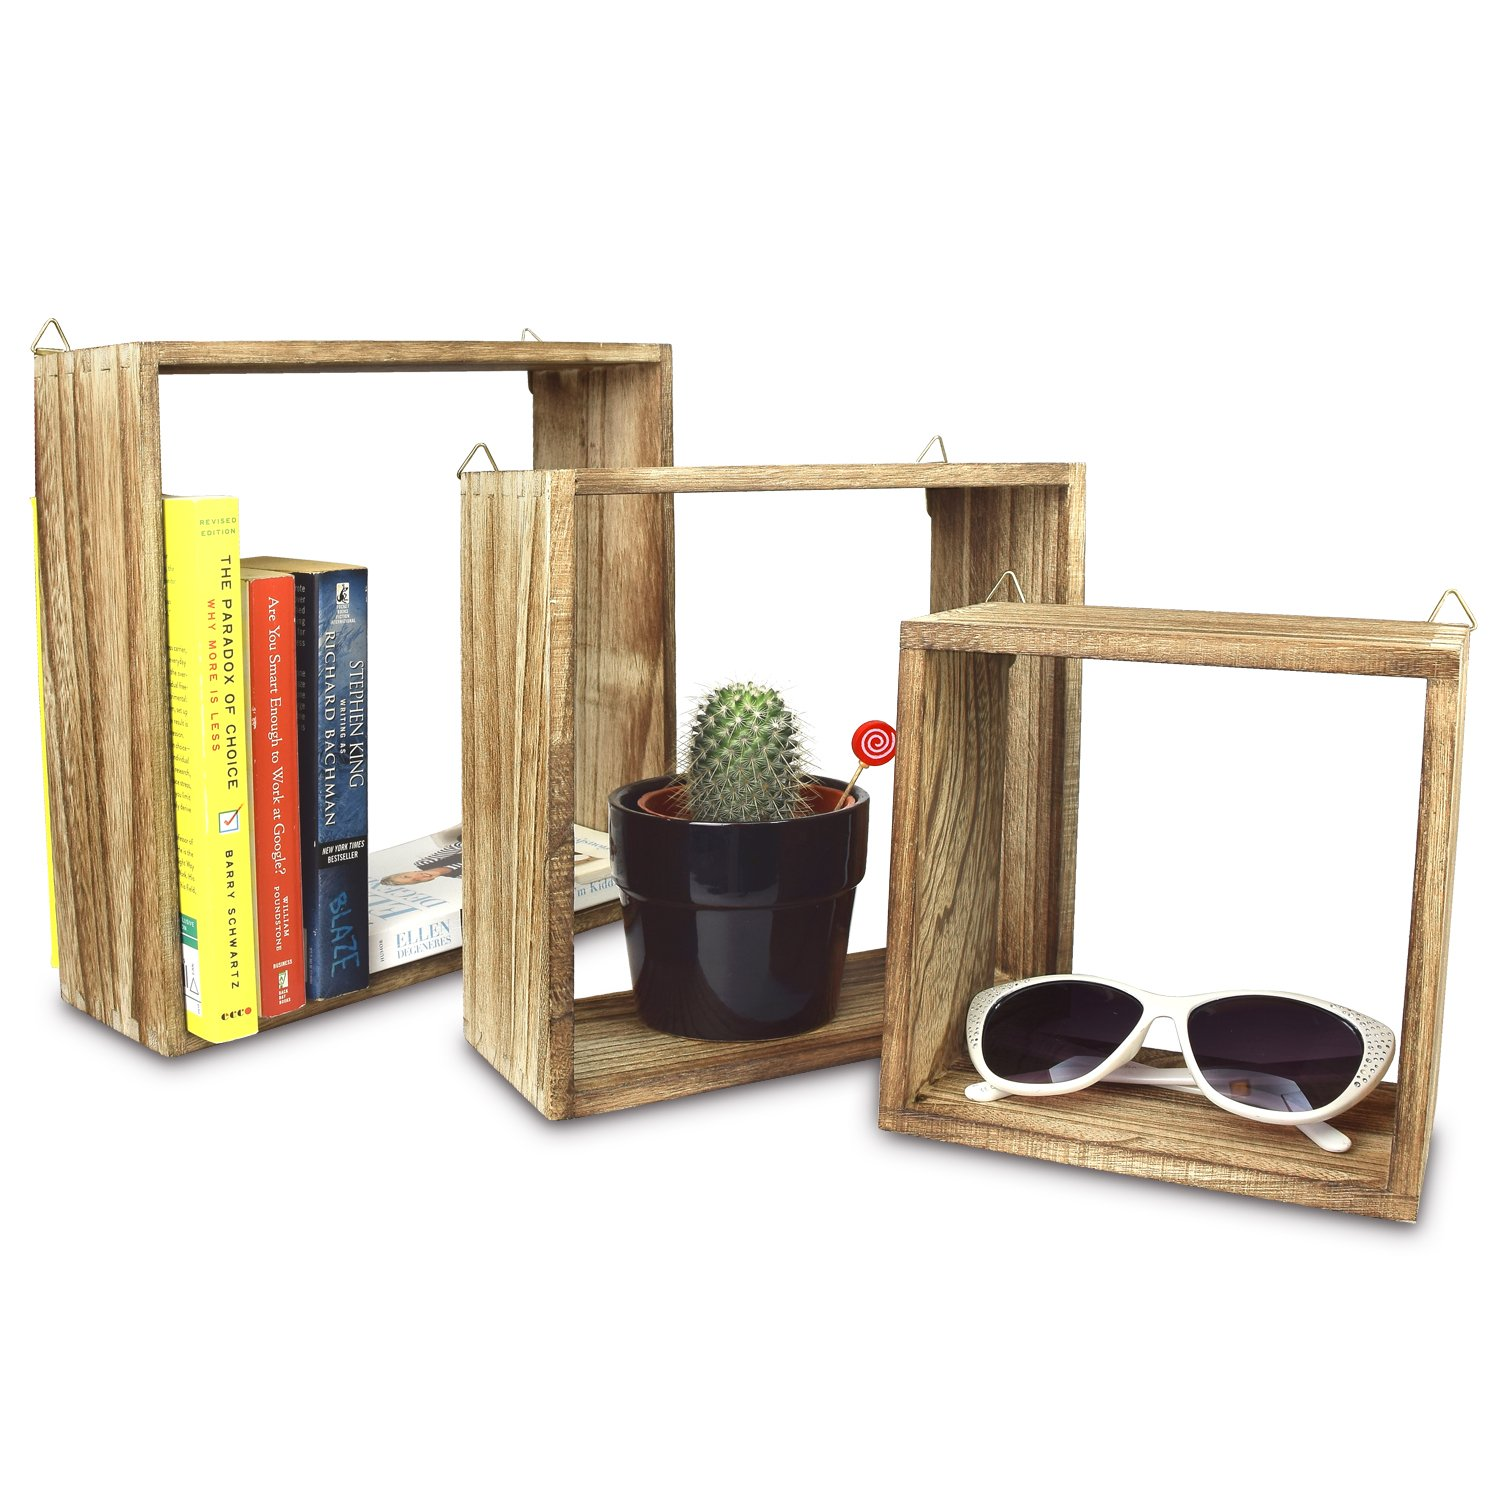 Ikee Design Wooden Square Wall Shelves, Shadow